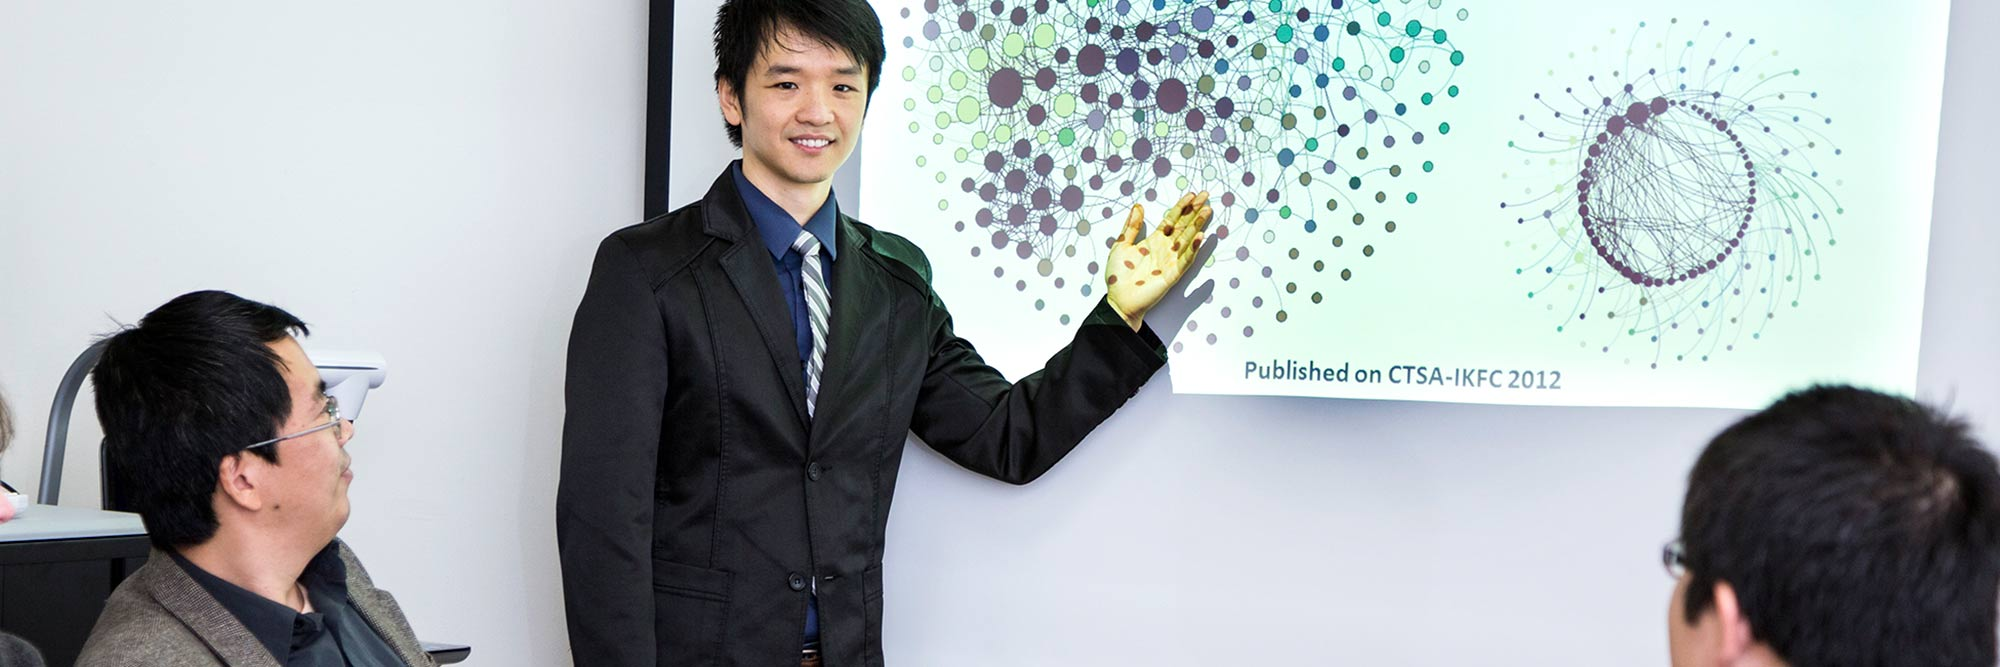 banner-health-care-informatics-ms BioDLP Center Director, Jake Luo, points to a PowerPoint slide on a screen that shows the relationship analysis of UWM and other healthcare institutions.